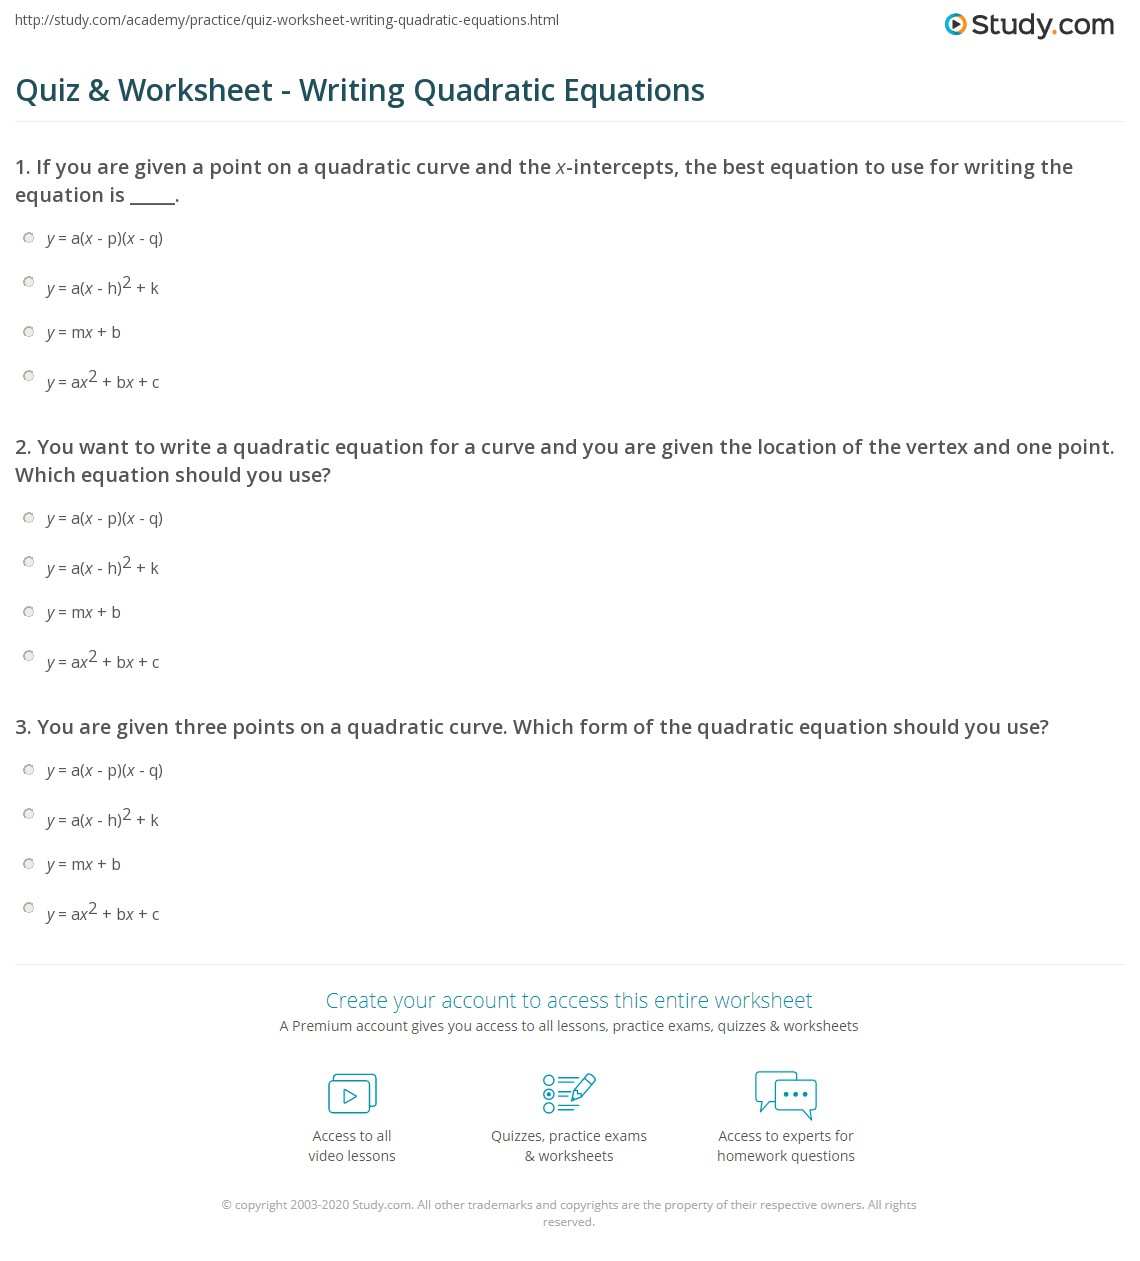 Writing Quadratic Equations Given 3 Points Worksheet